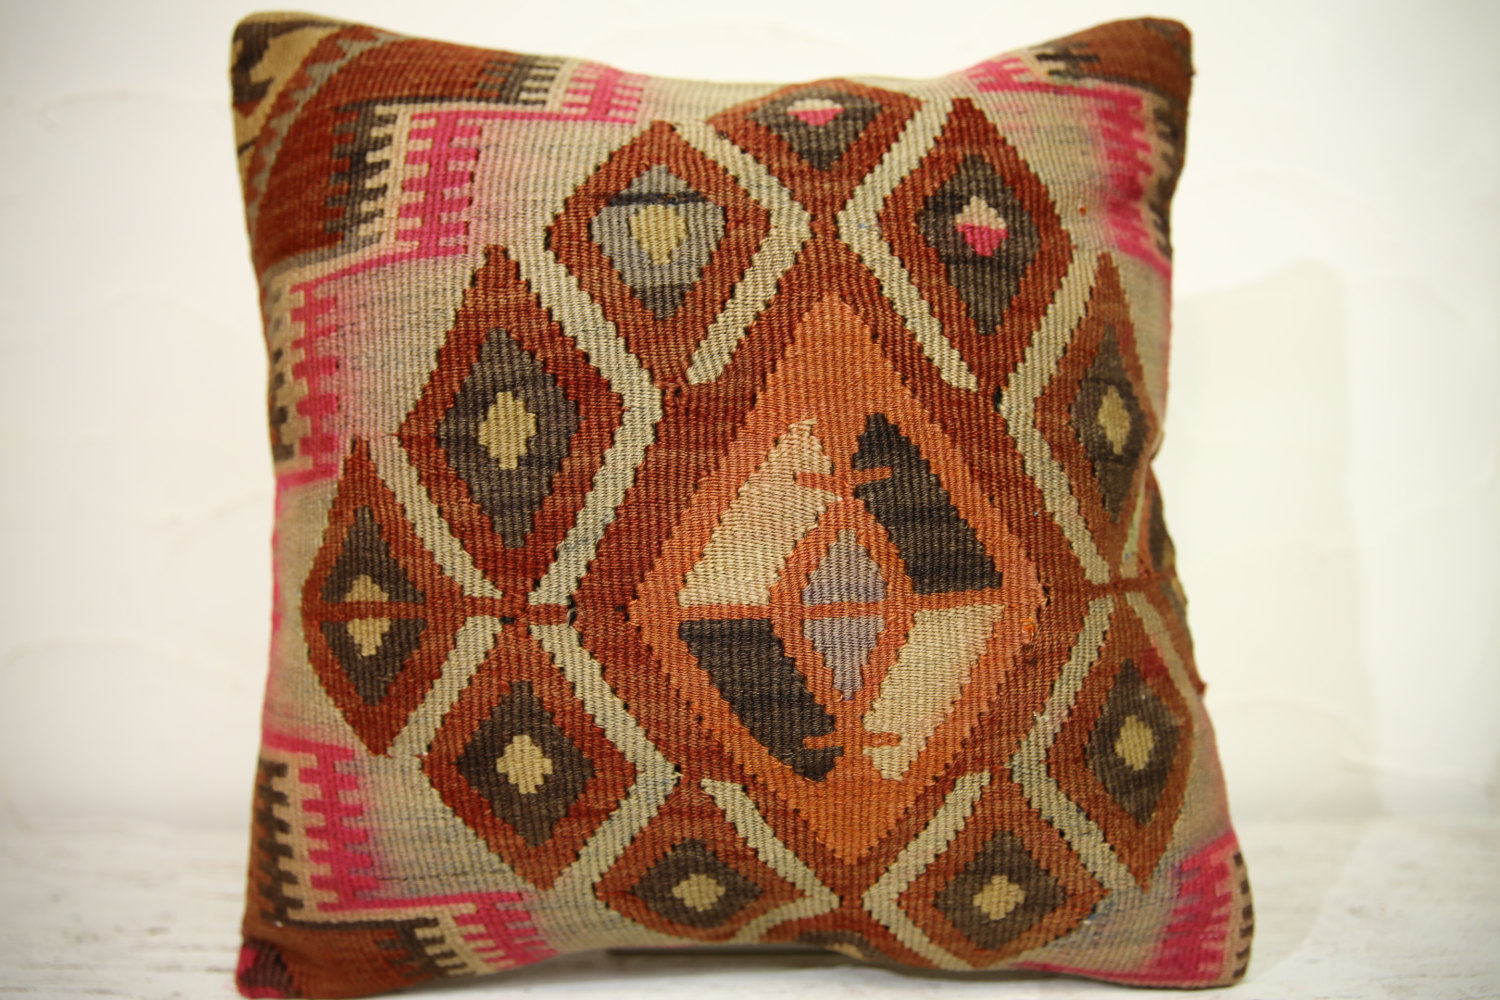 Kilim Pillows | 16x16 | Turkish pillows | 1261 | Accent Pillow,Decorative Pillow